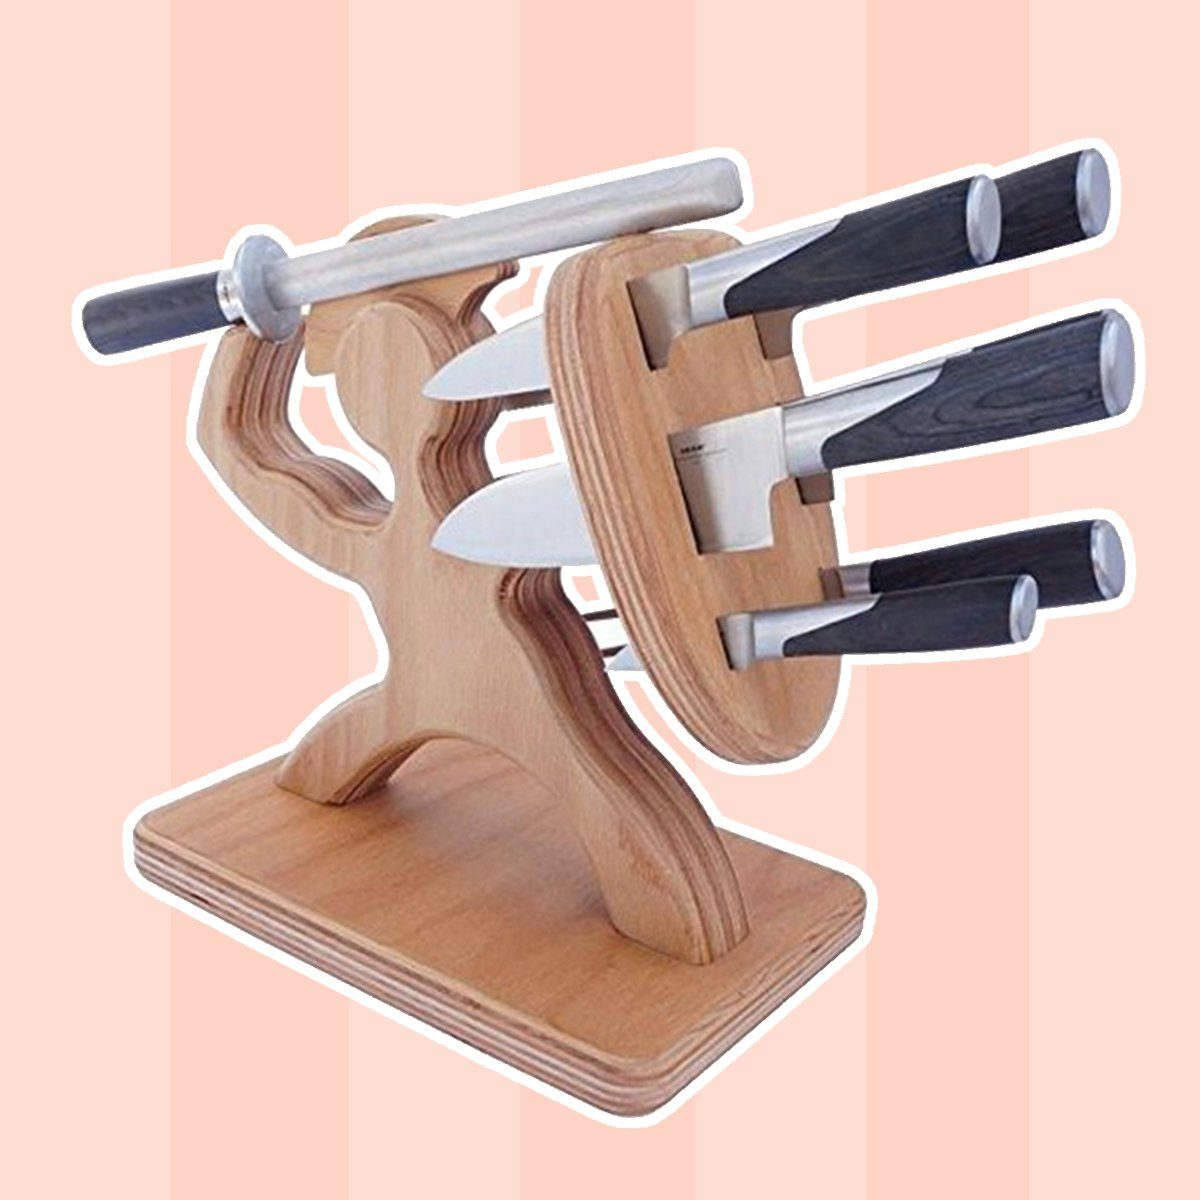 Spartan Knife Block - Handmade Premium Birch - Holds Your 6 Knives, Solid, Heavy, Magnetic Steel Holder (No Knives)